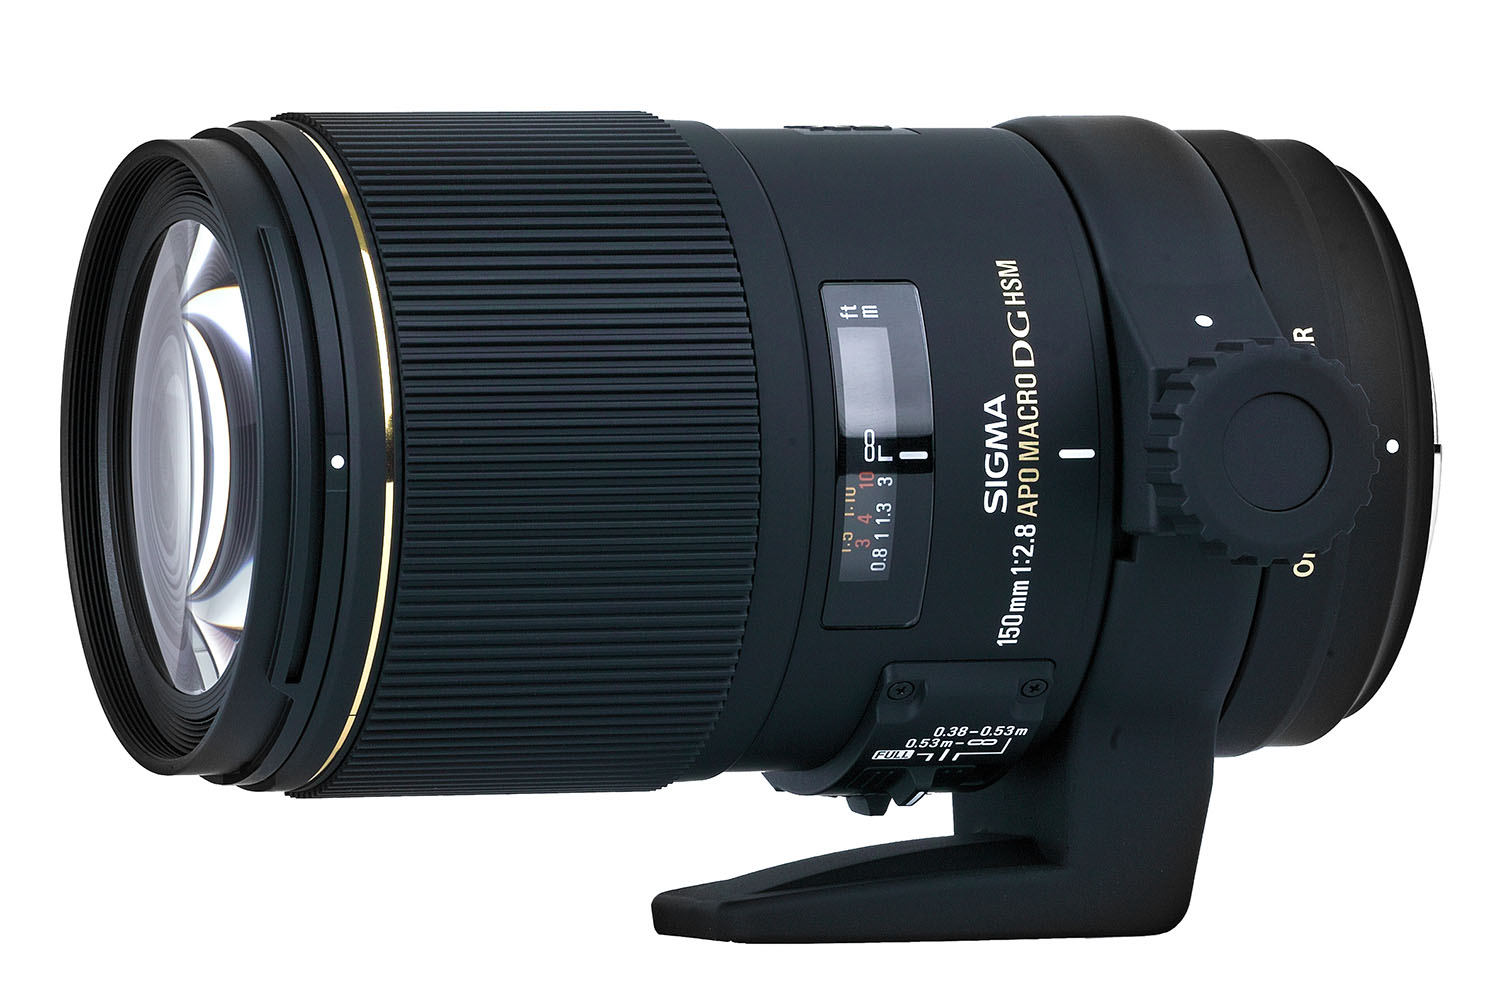 The premium Sigma APO 150mm f/2.8 EX DG OS HSM